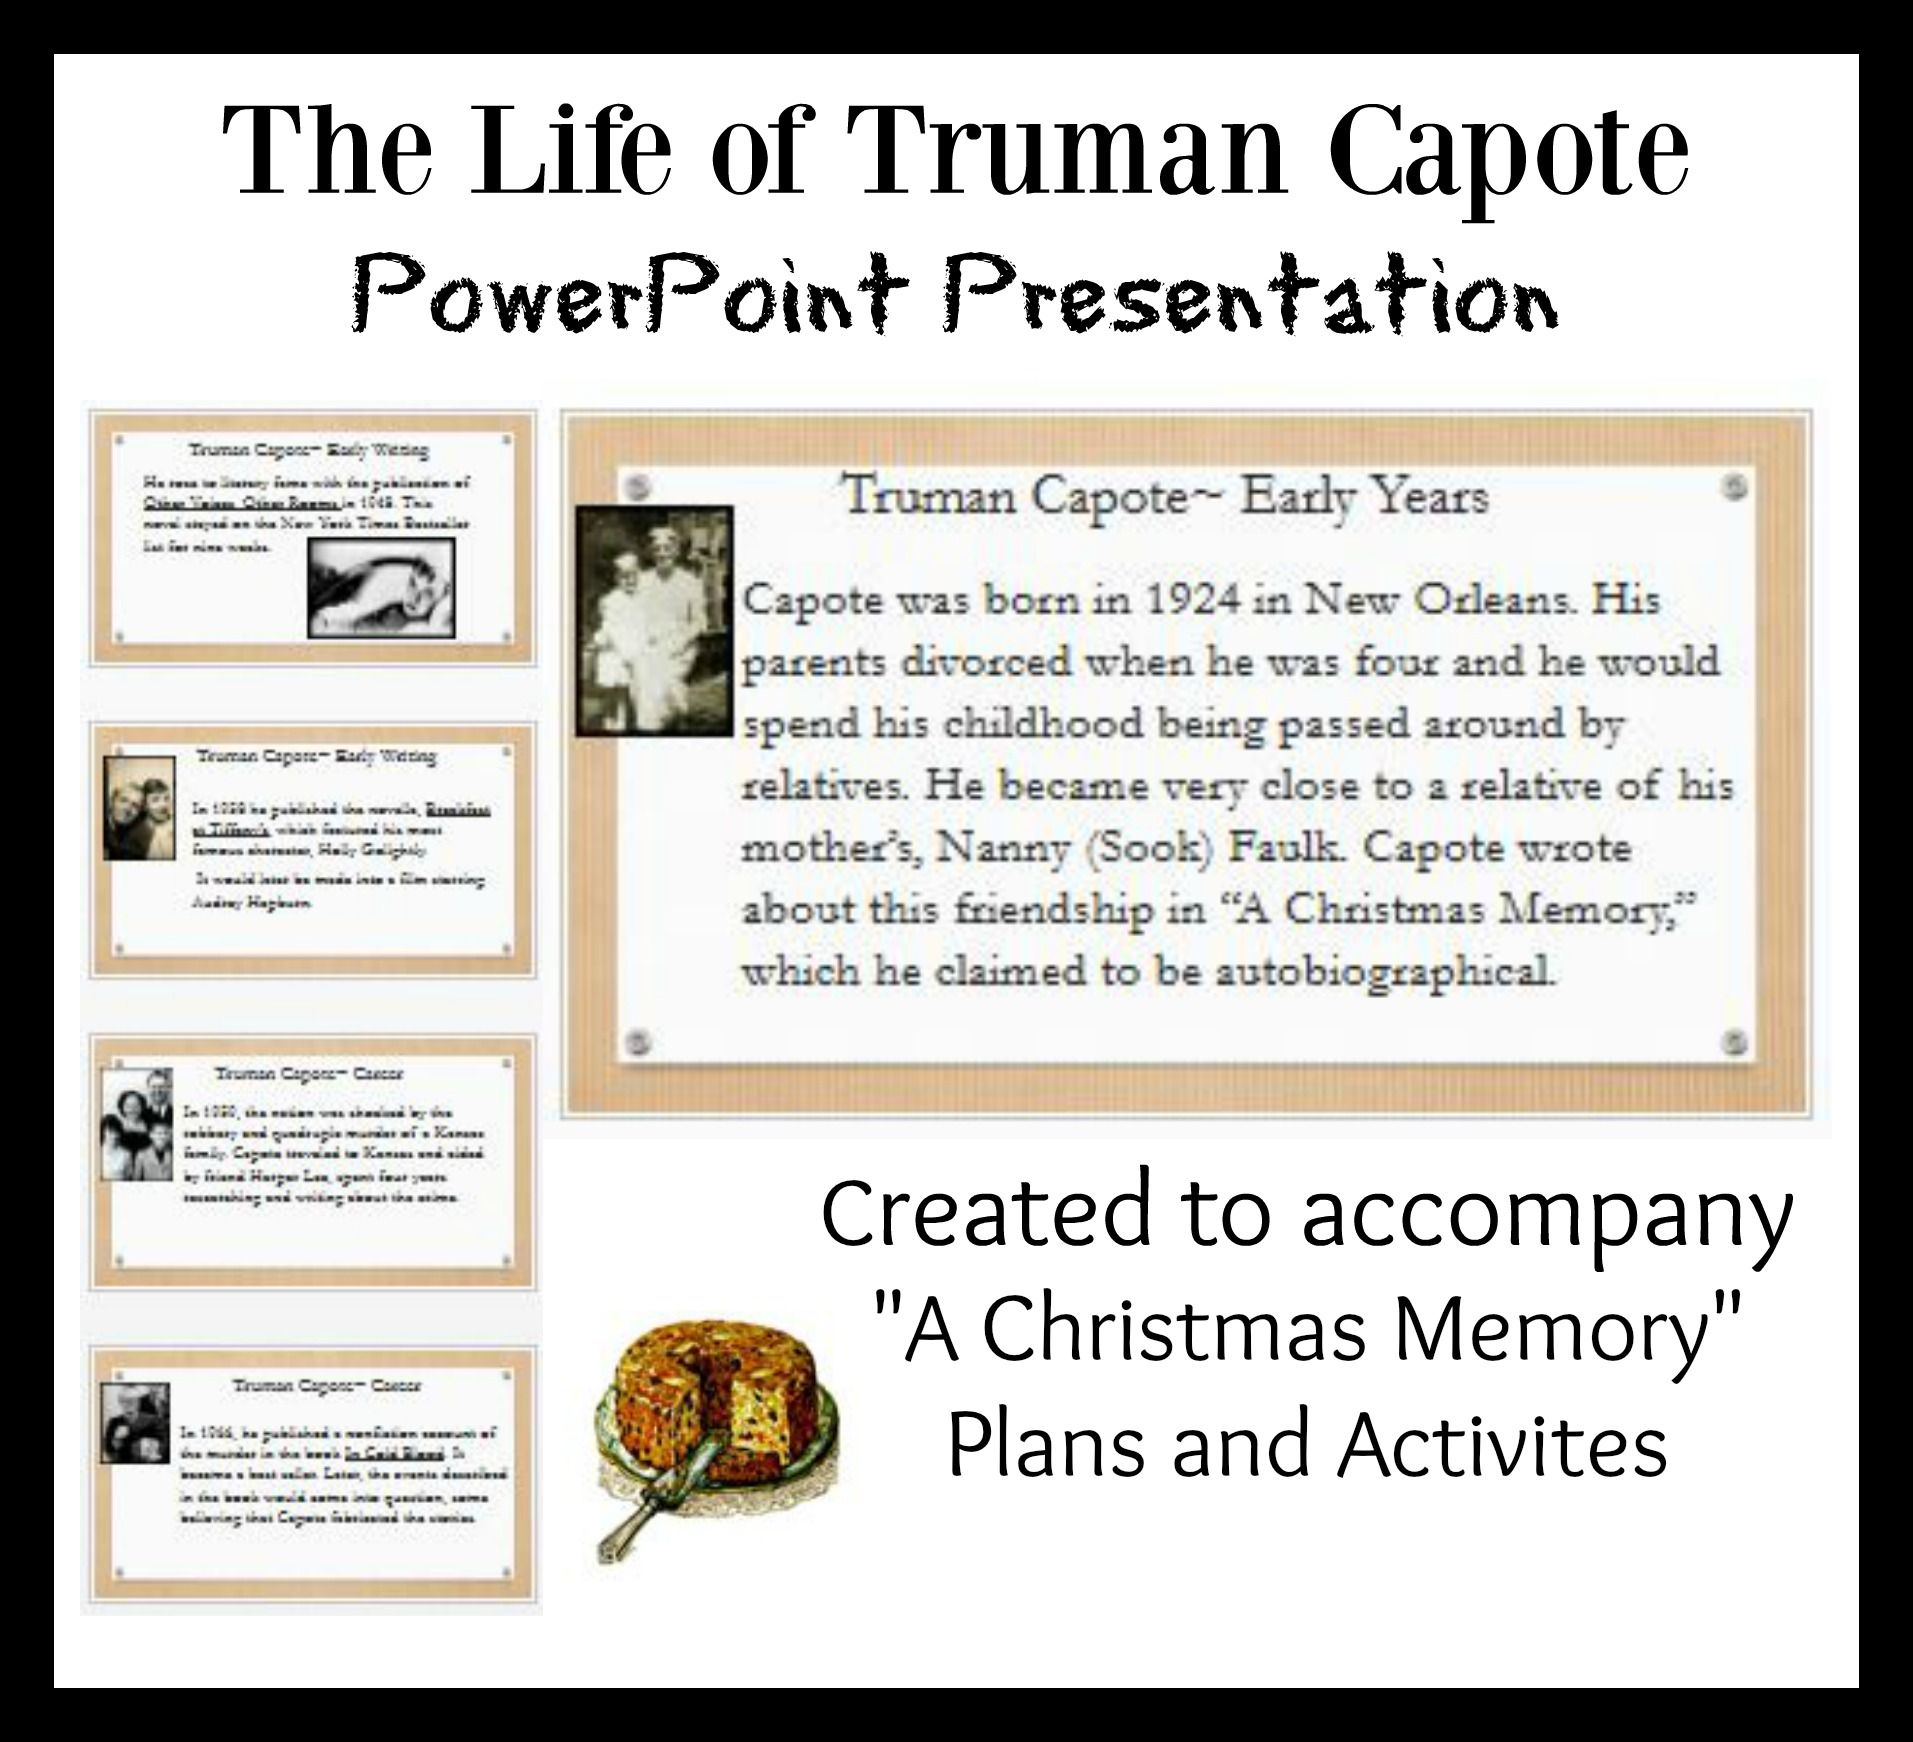 Truman Capote Life and Writings PPT. Free download. | Christmas ...